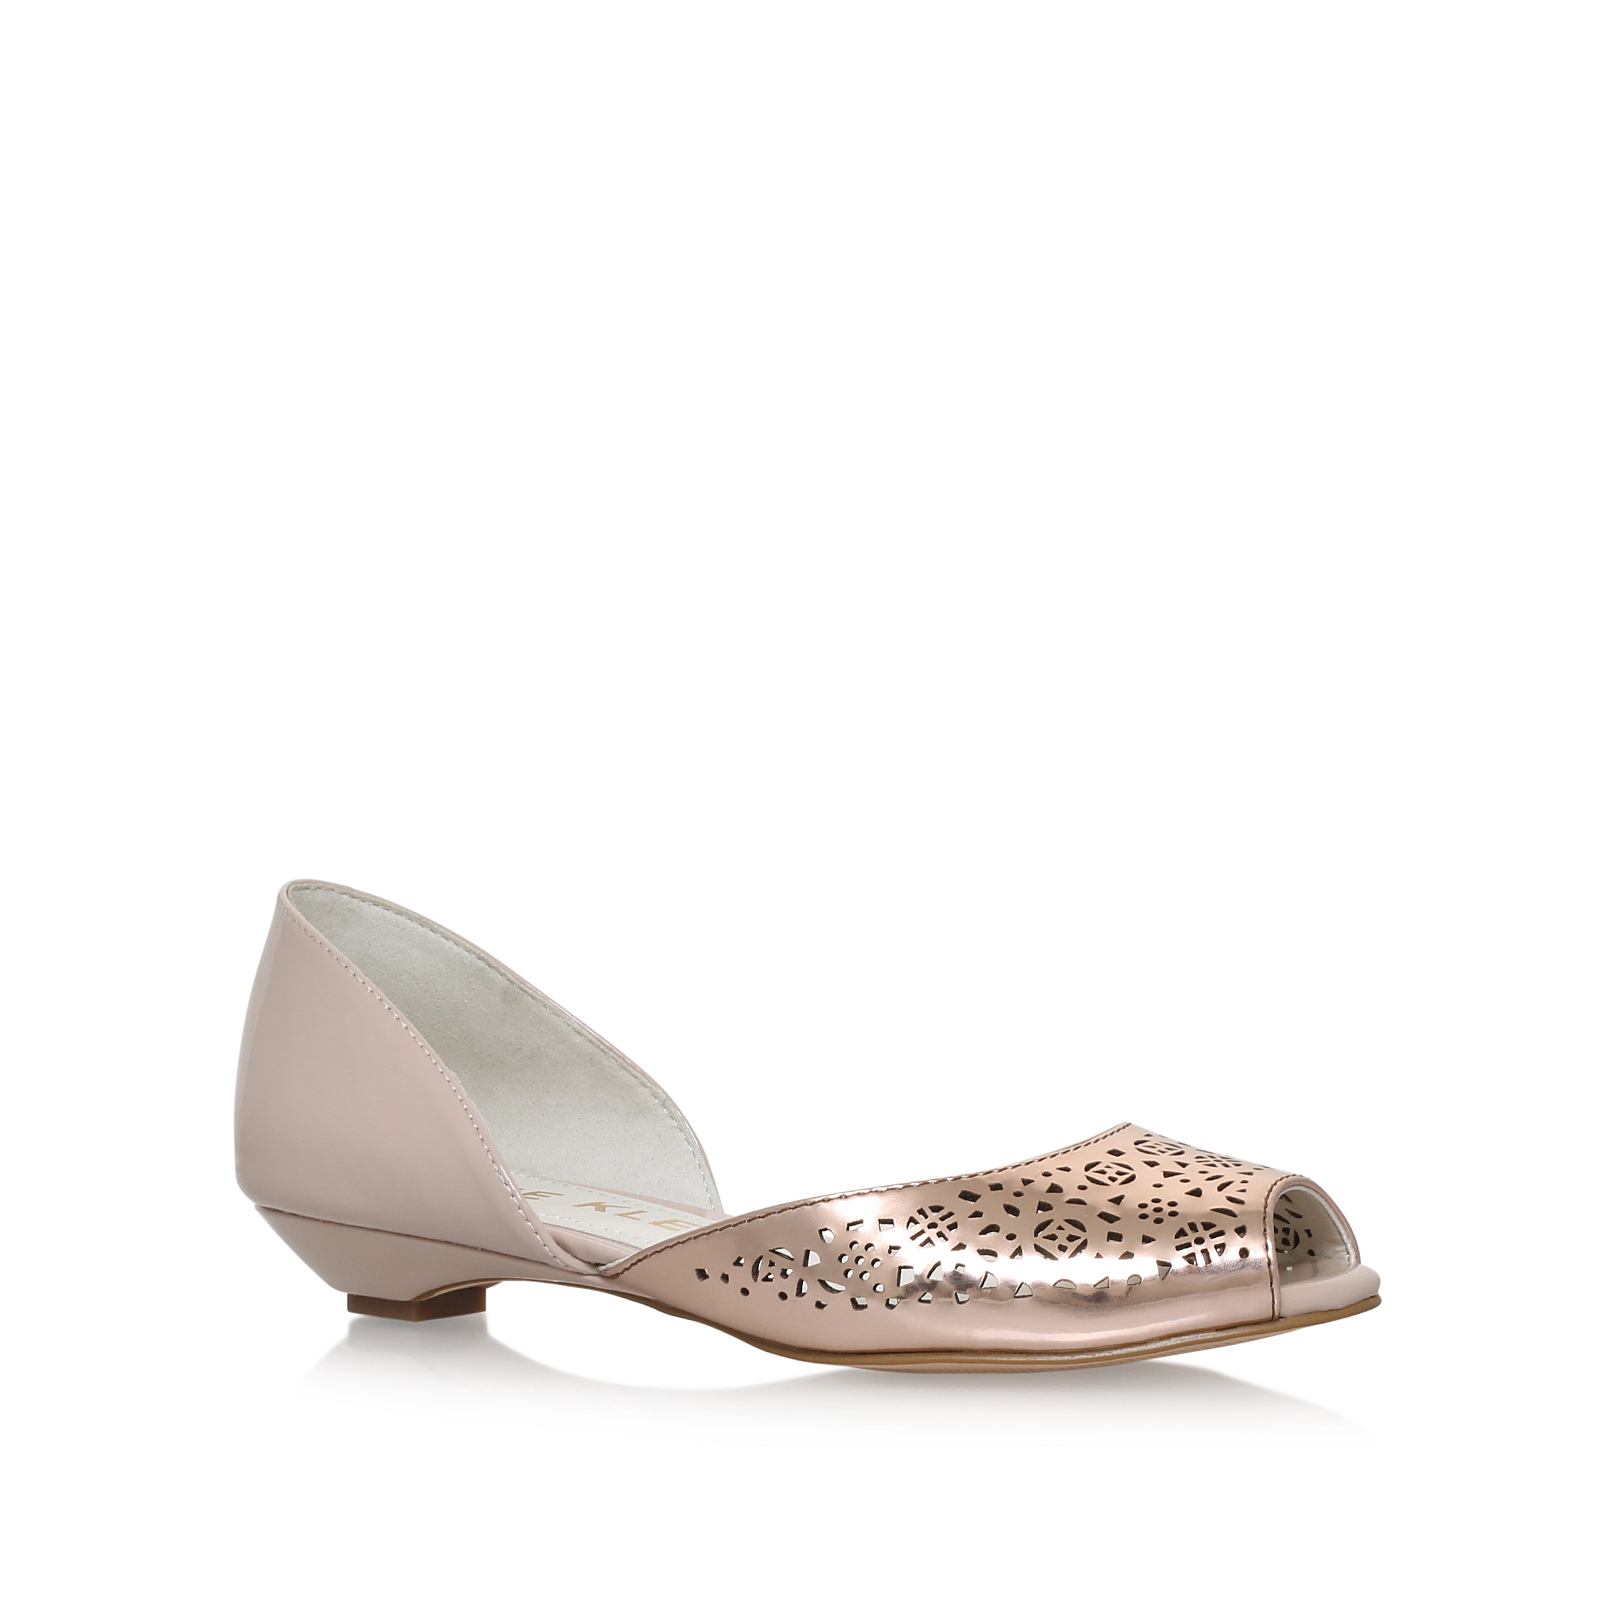 Fatima Beige Flat Shoes By Anne Klein 9i3m93p2